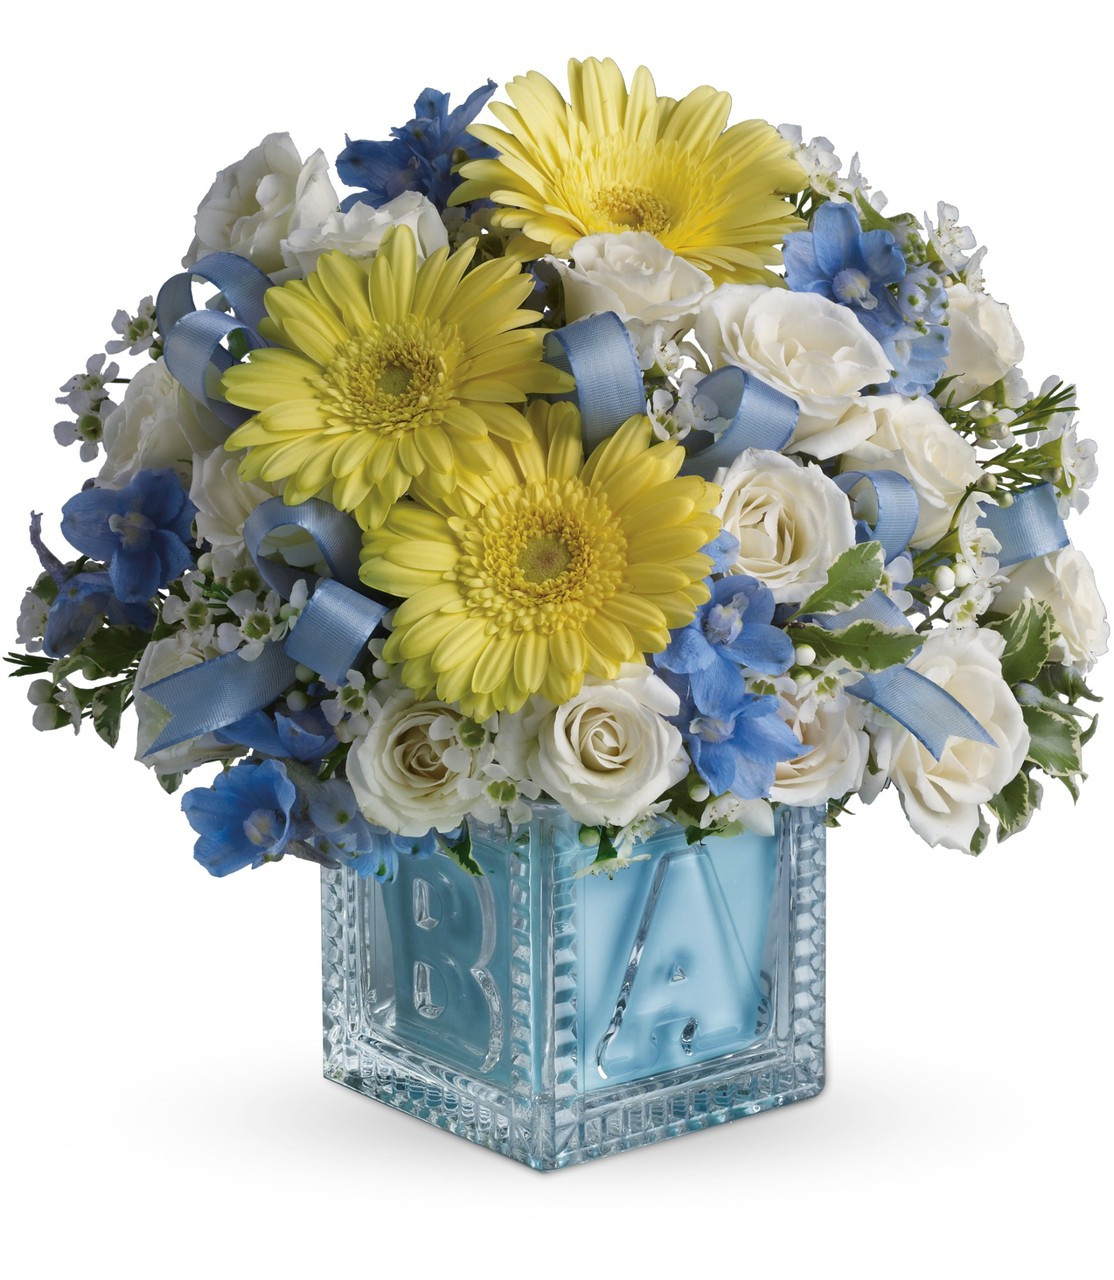 Send flowers online - Same day delivery of New Baby Boy Flowers in ...